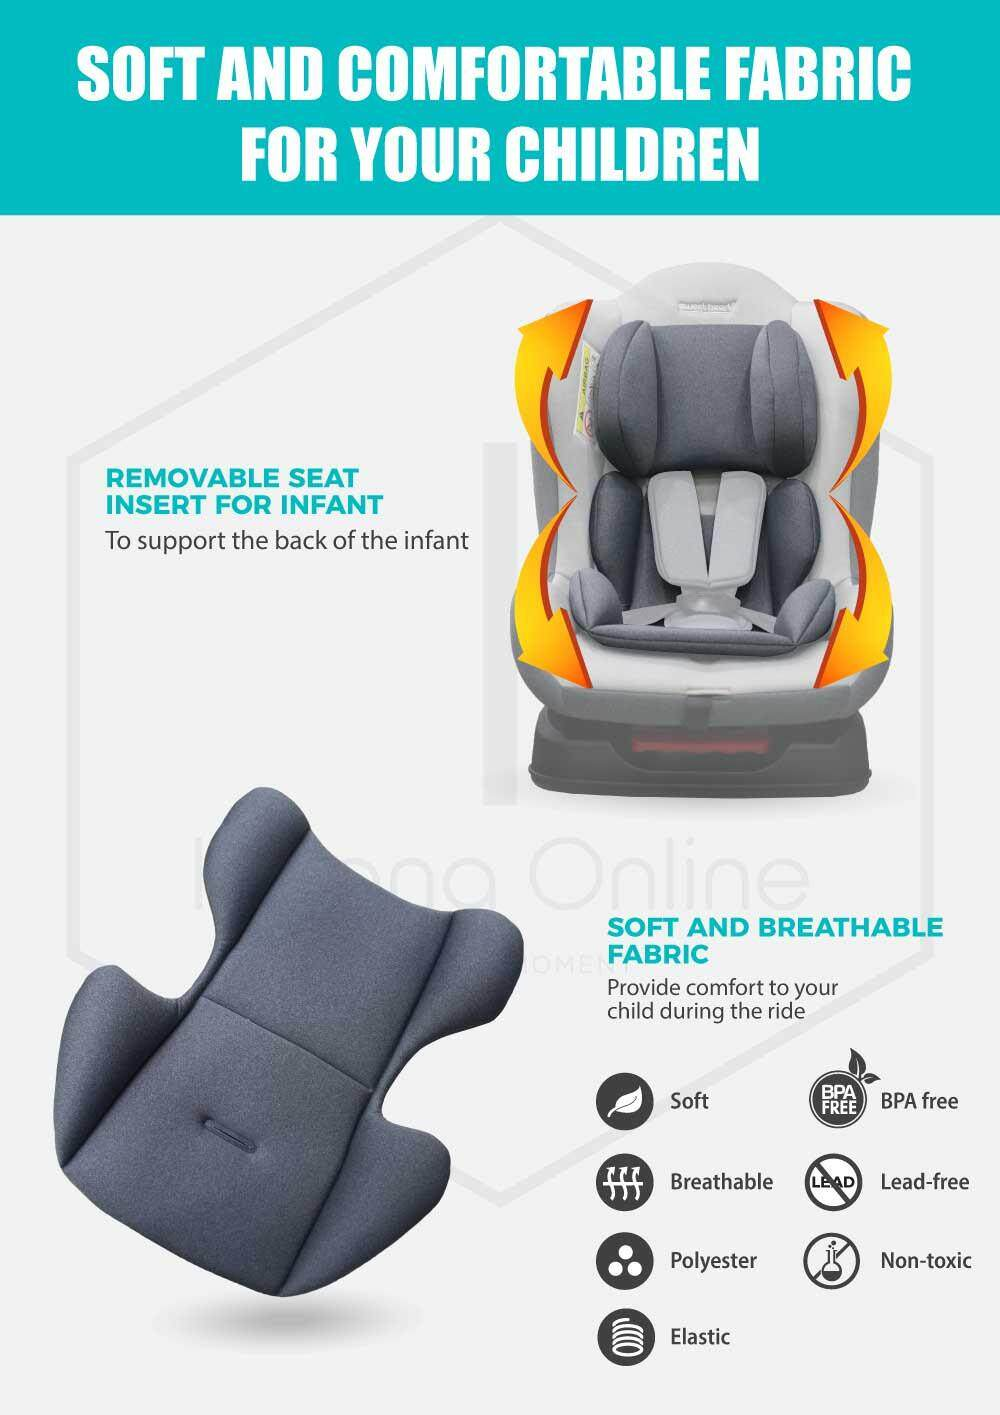 Sweet Heart Paris CS226 Group 01 Baby Car Seat Assurance JPJ Approved MIROS and ECE R44/04 Certified (Royal Space Blue)